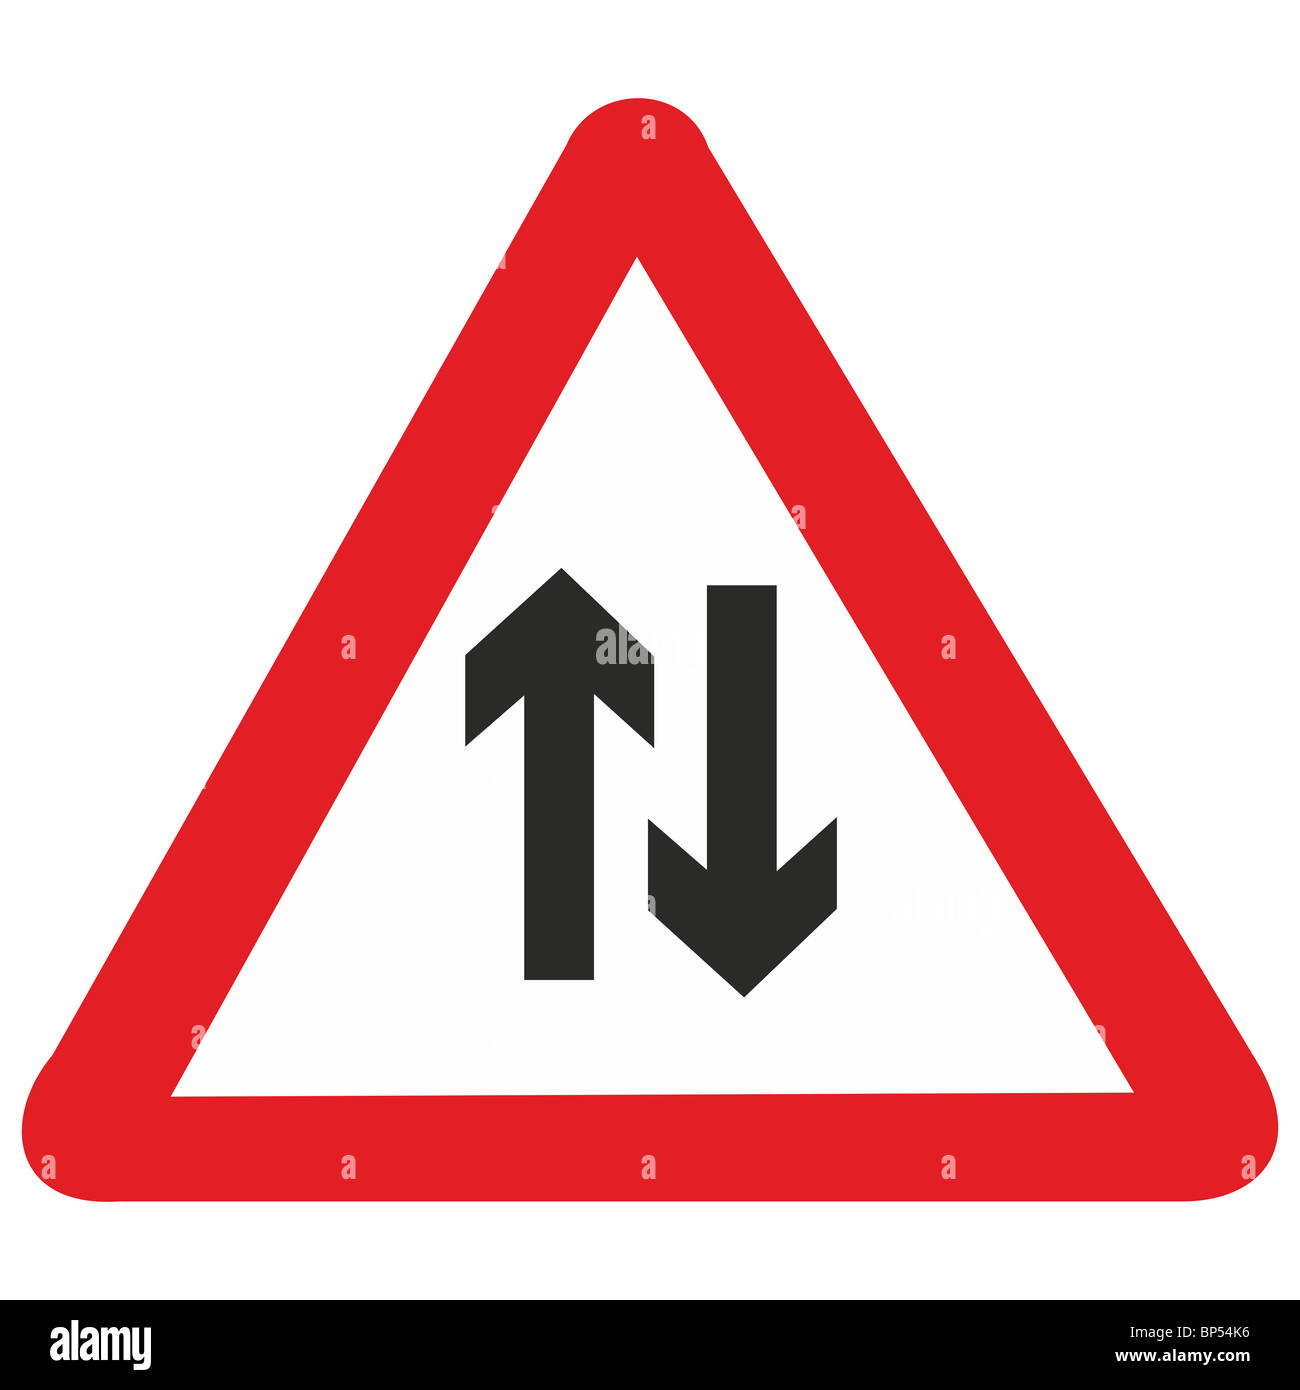 uk road sign arrows two way traffic drive on left stock photo